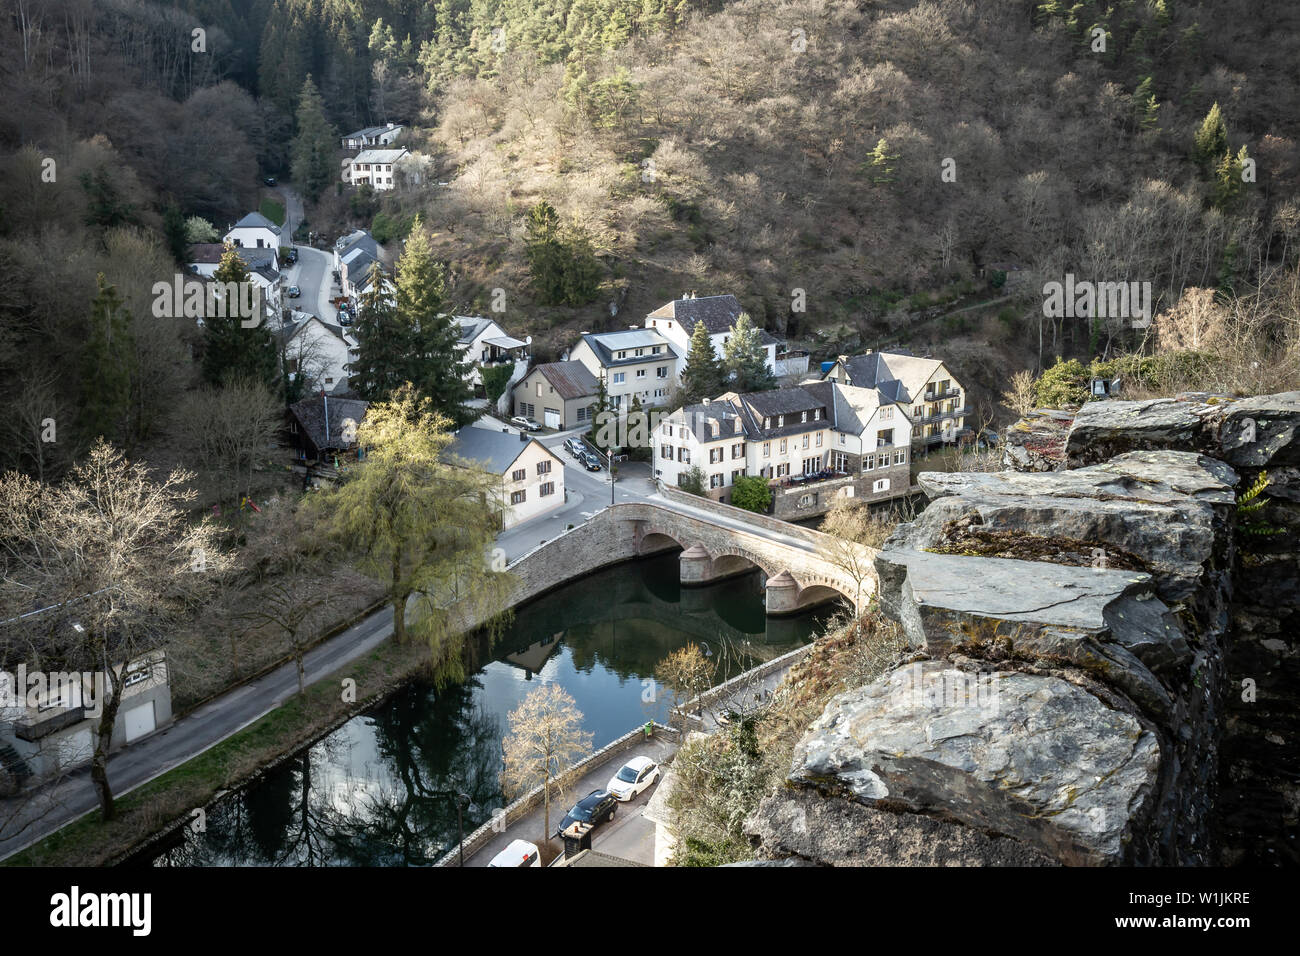 Romantic village by the river.Sauer, Luxembourg - Stock Image